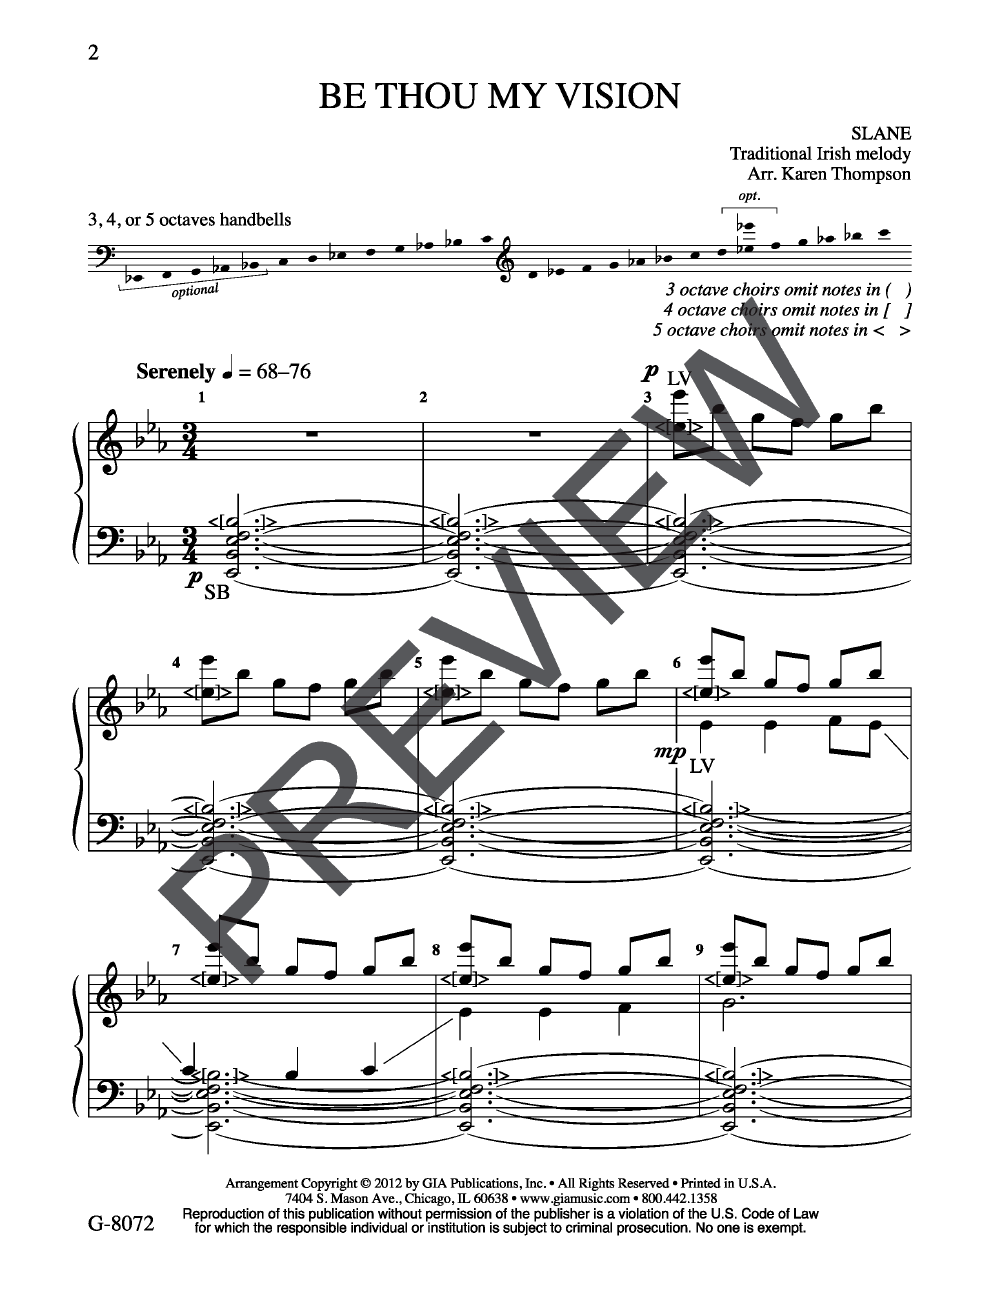 Be Thou My Vision arr. Karen Thompson| J.W. Pepper Sheet Music